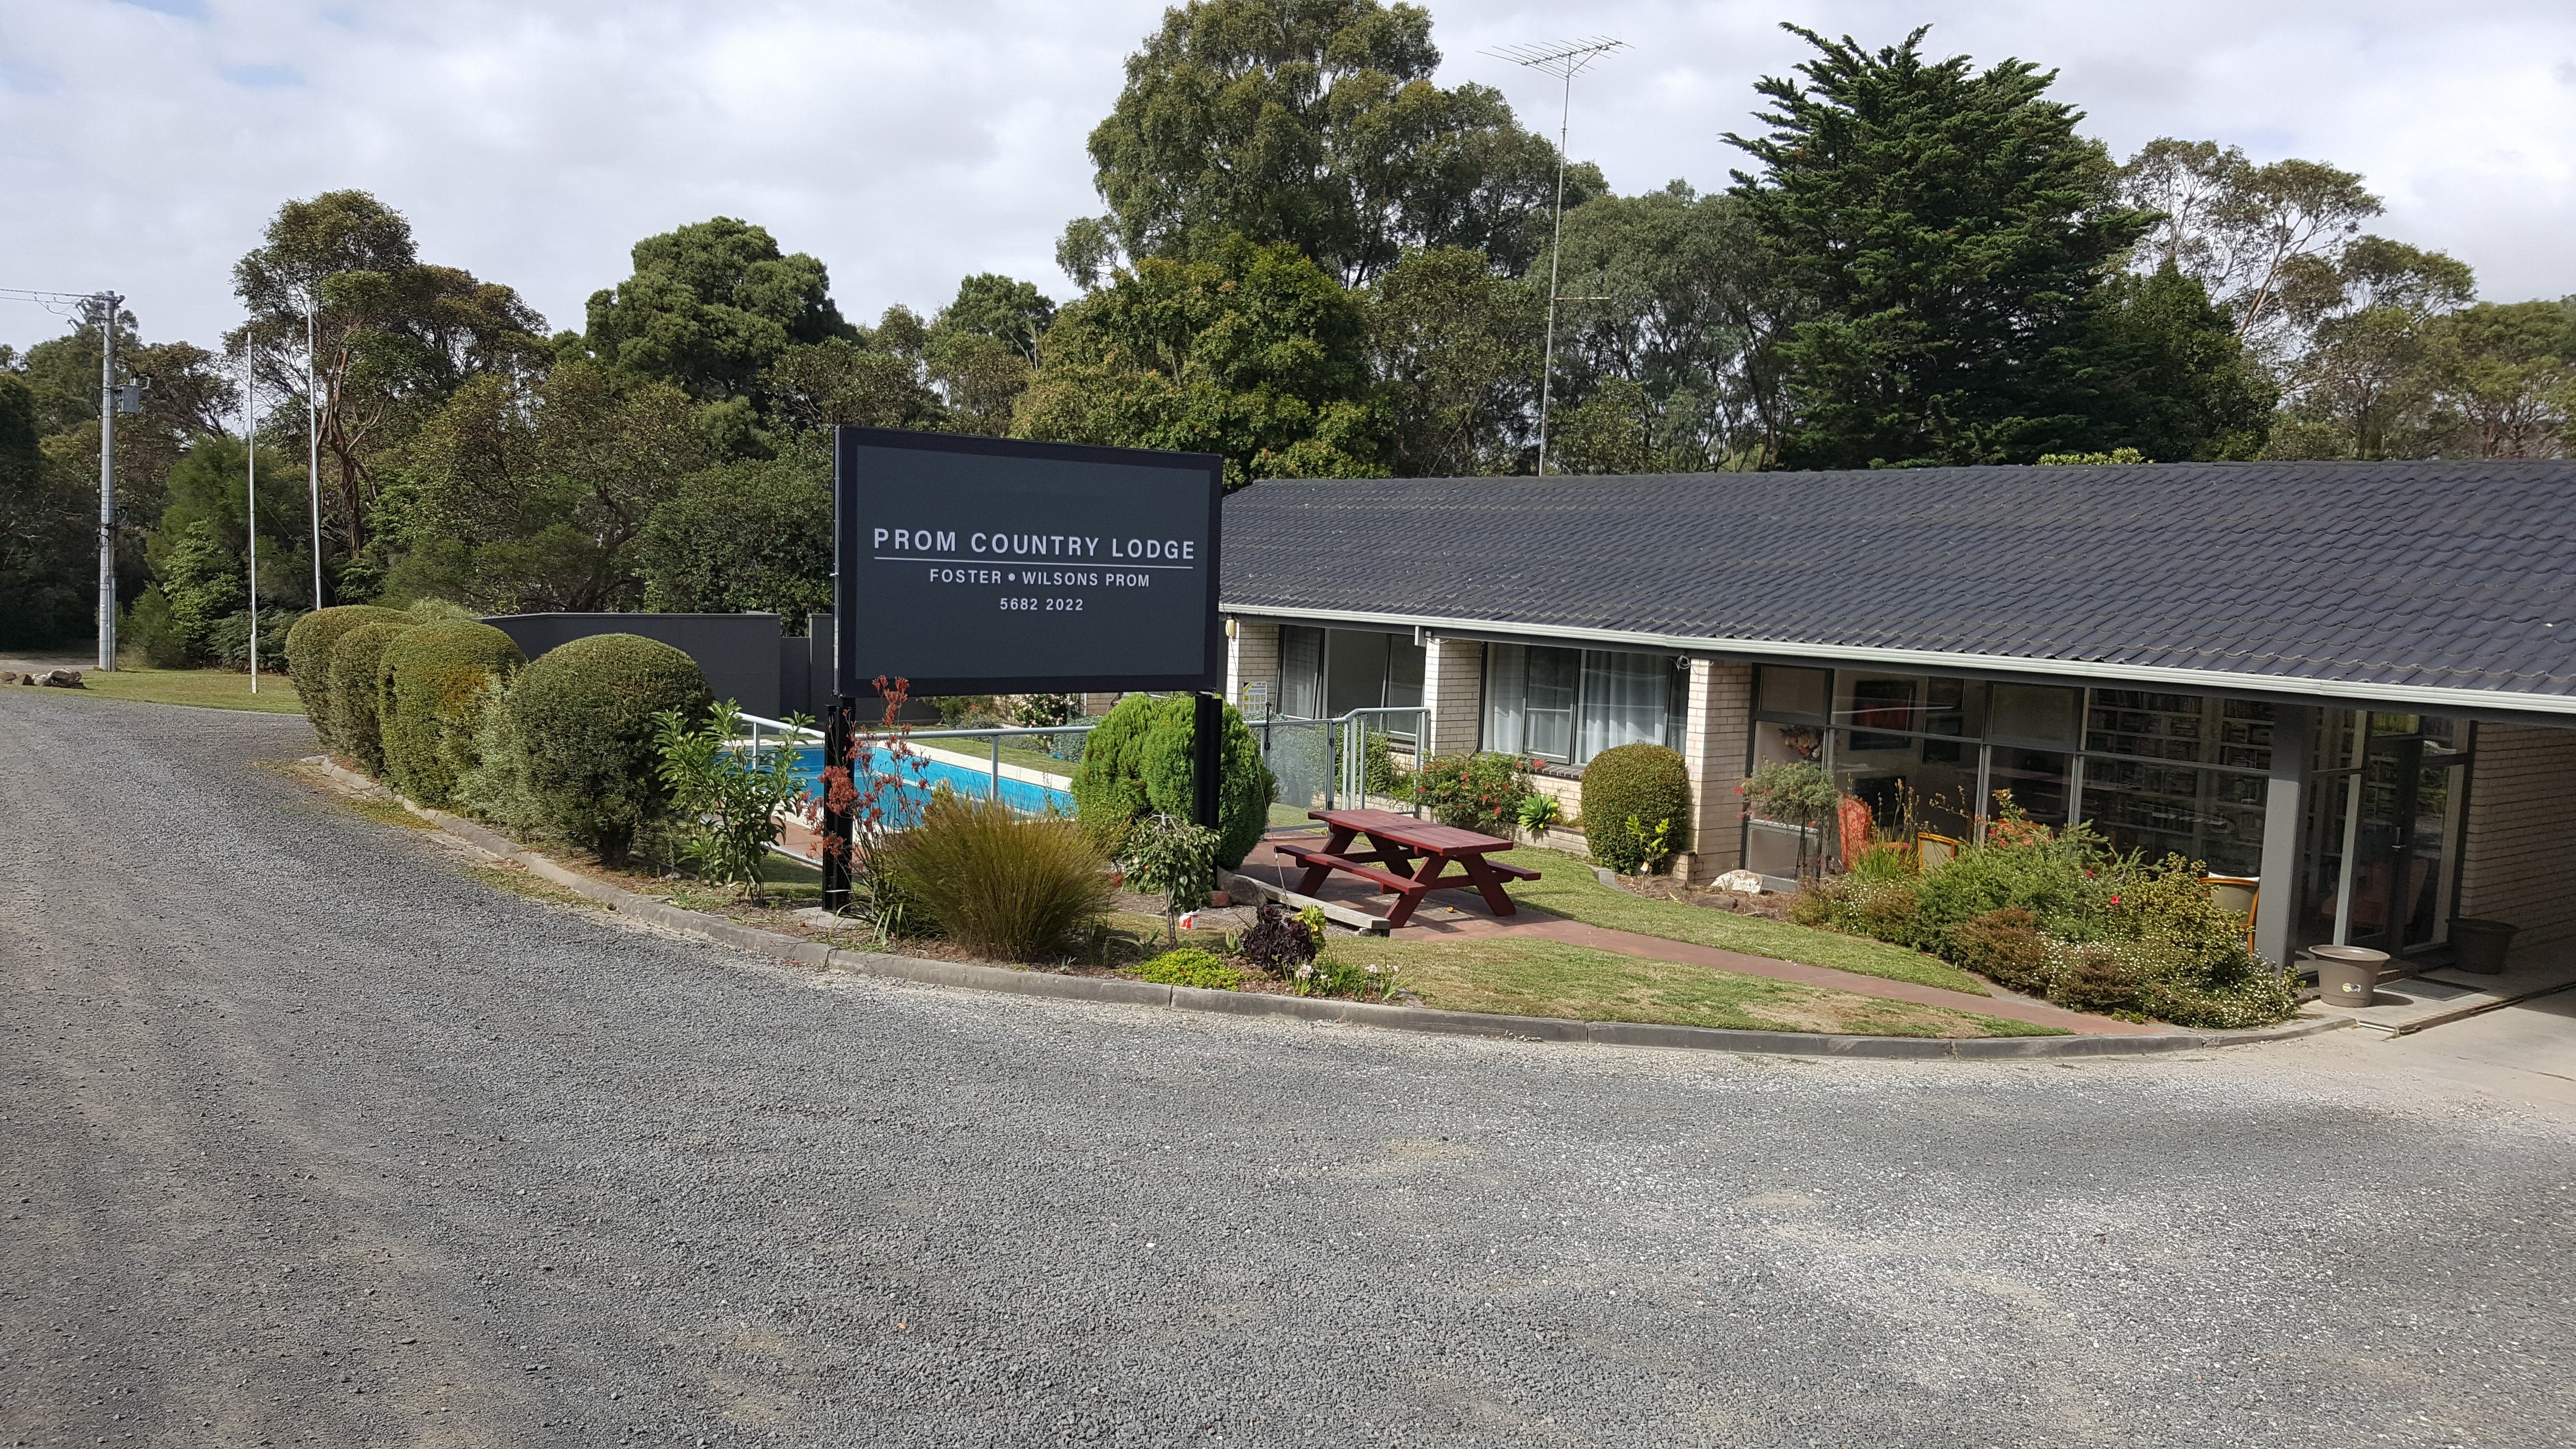 Prom Country Lodge - eAccommodation